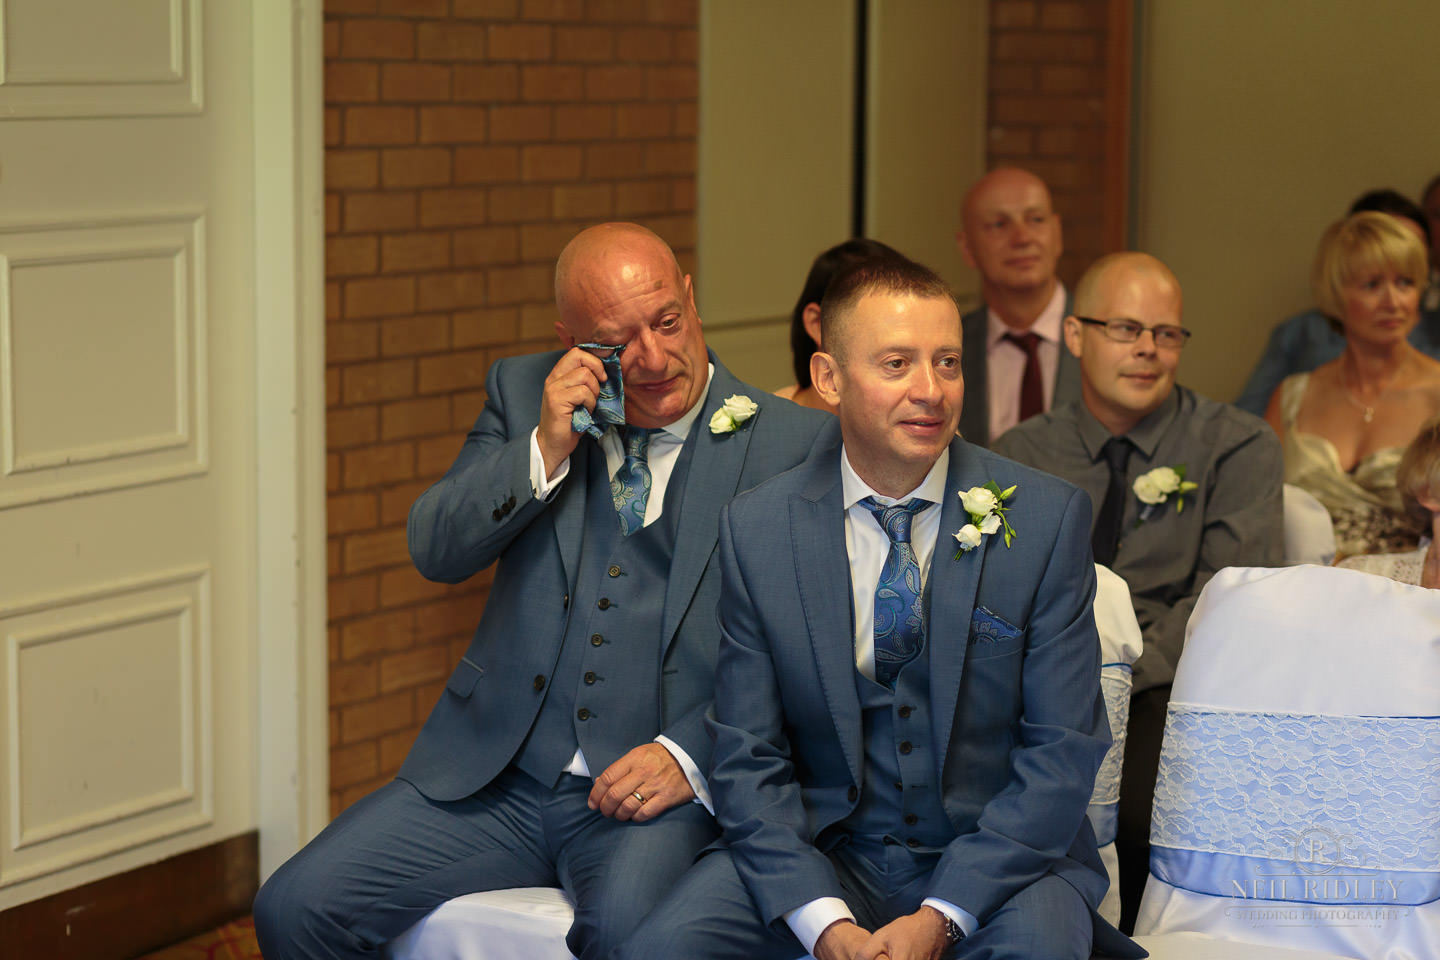 wedding guest wipes his eye at a wedding at Macdonald Portal Hotel, Tarporley